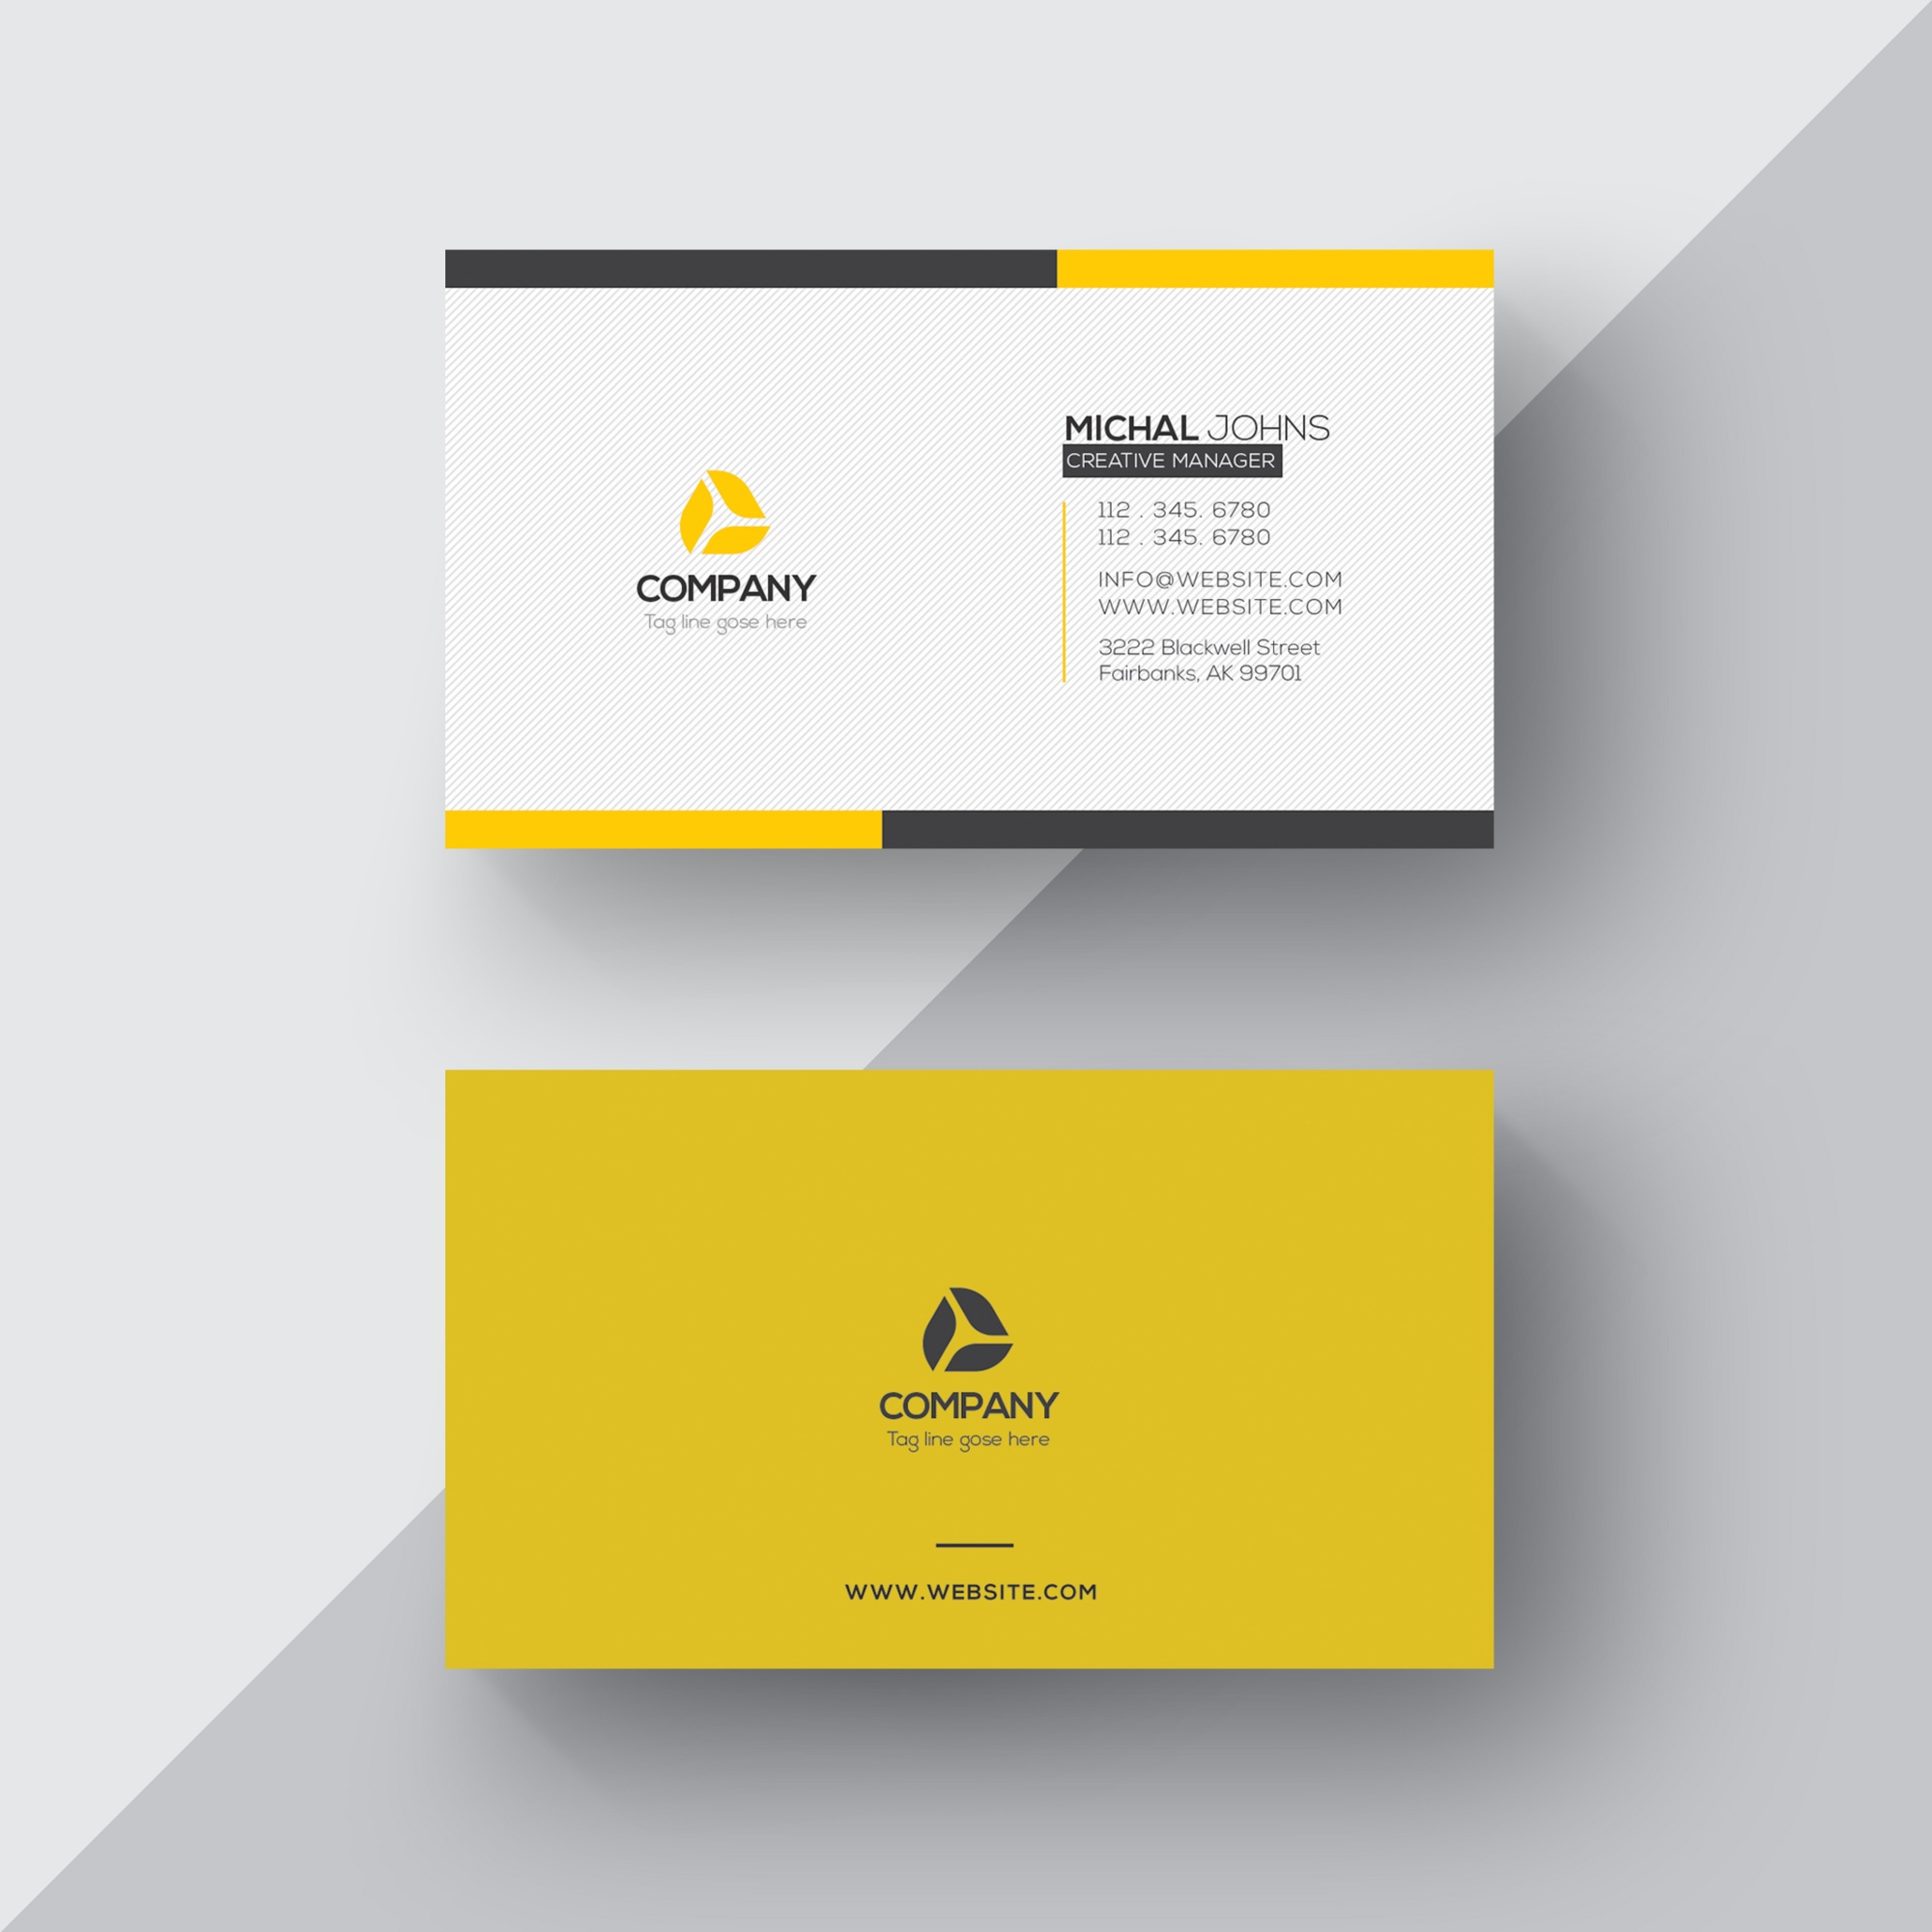 White and yellow business card